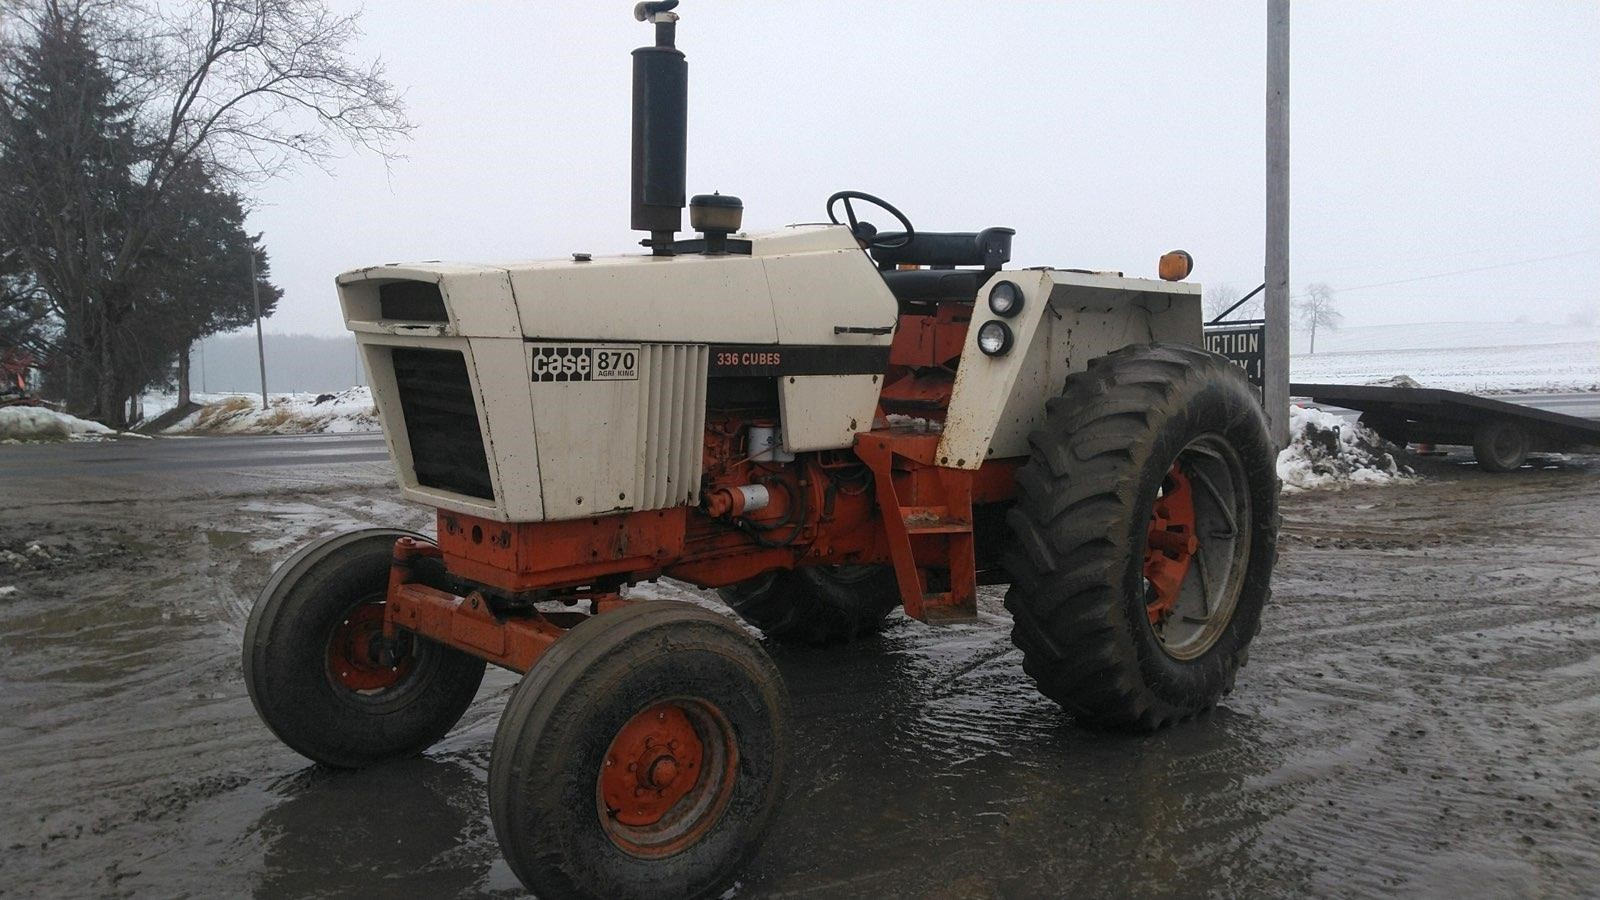 J.I. Case 870 Tractor